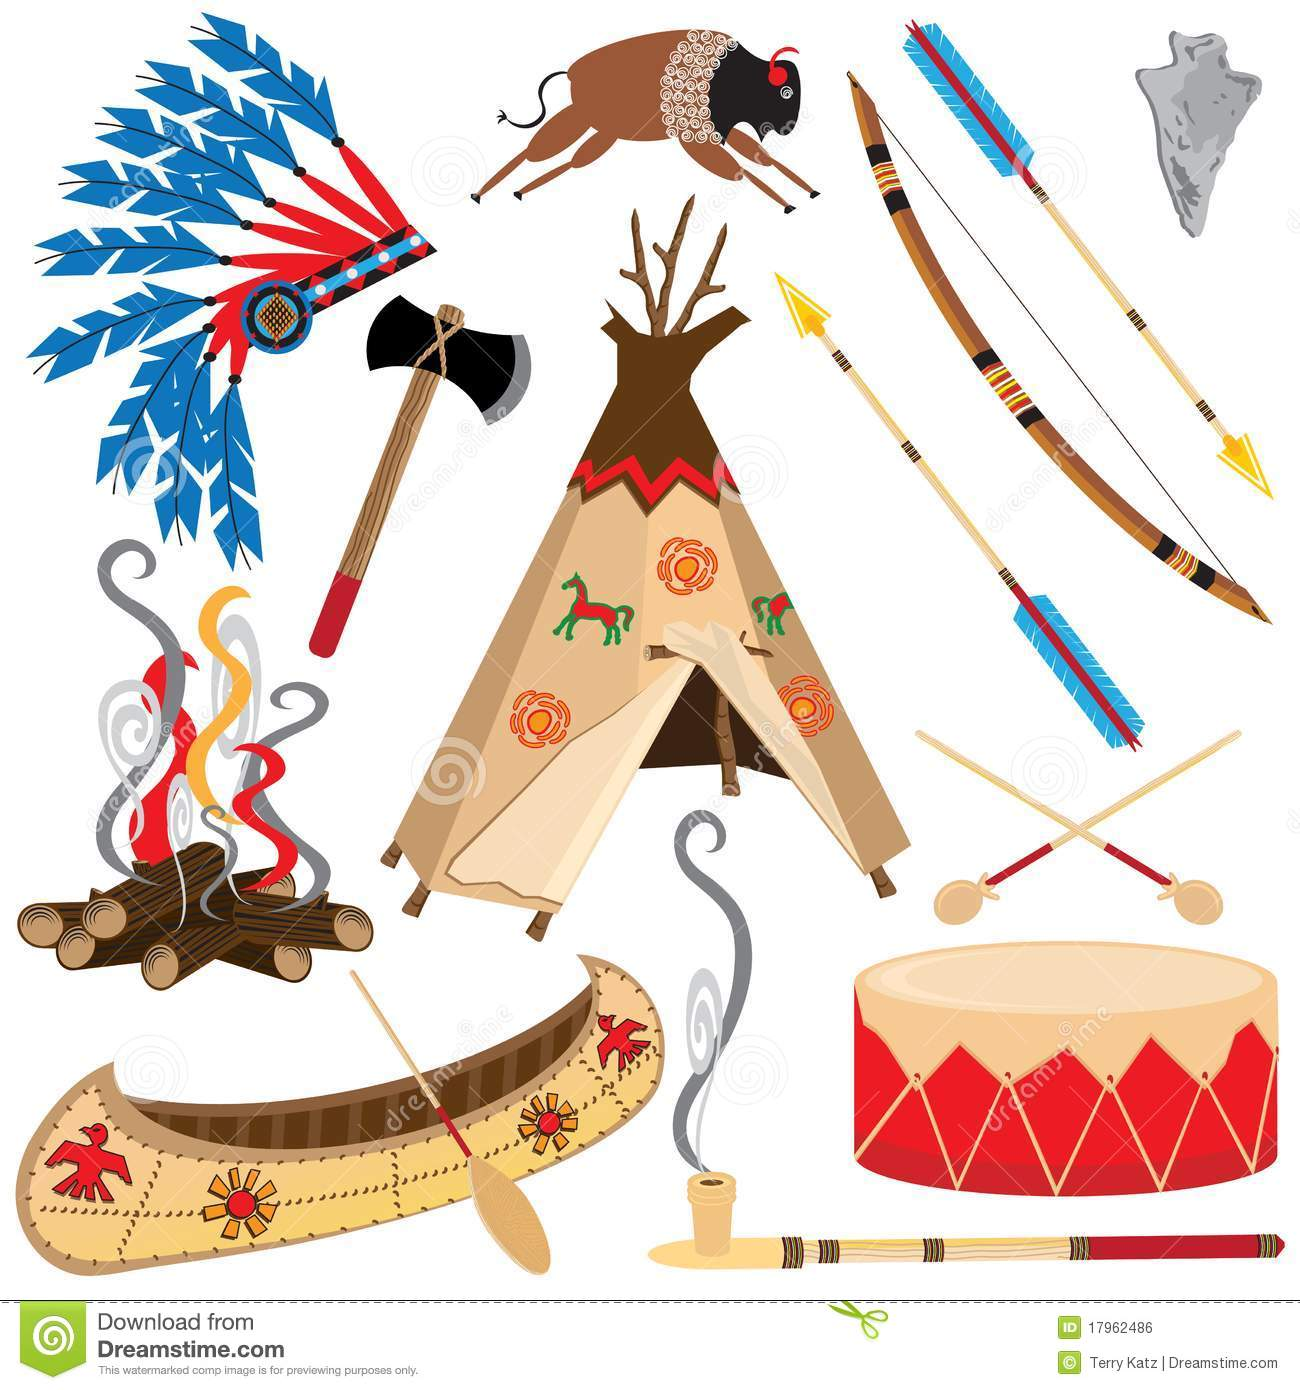 American Indian Clipart Icons Royalty Free Stock Image   Image